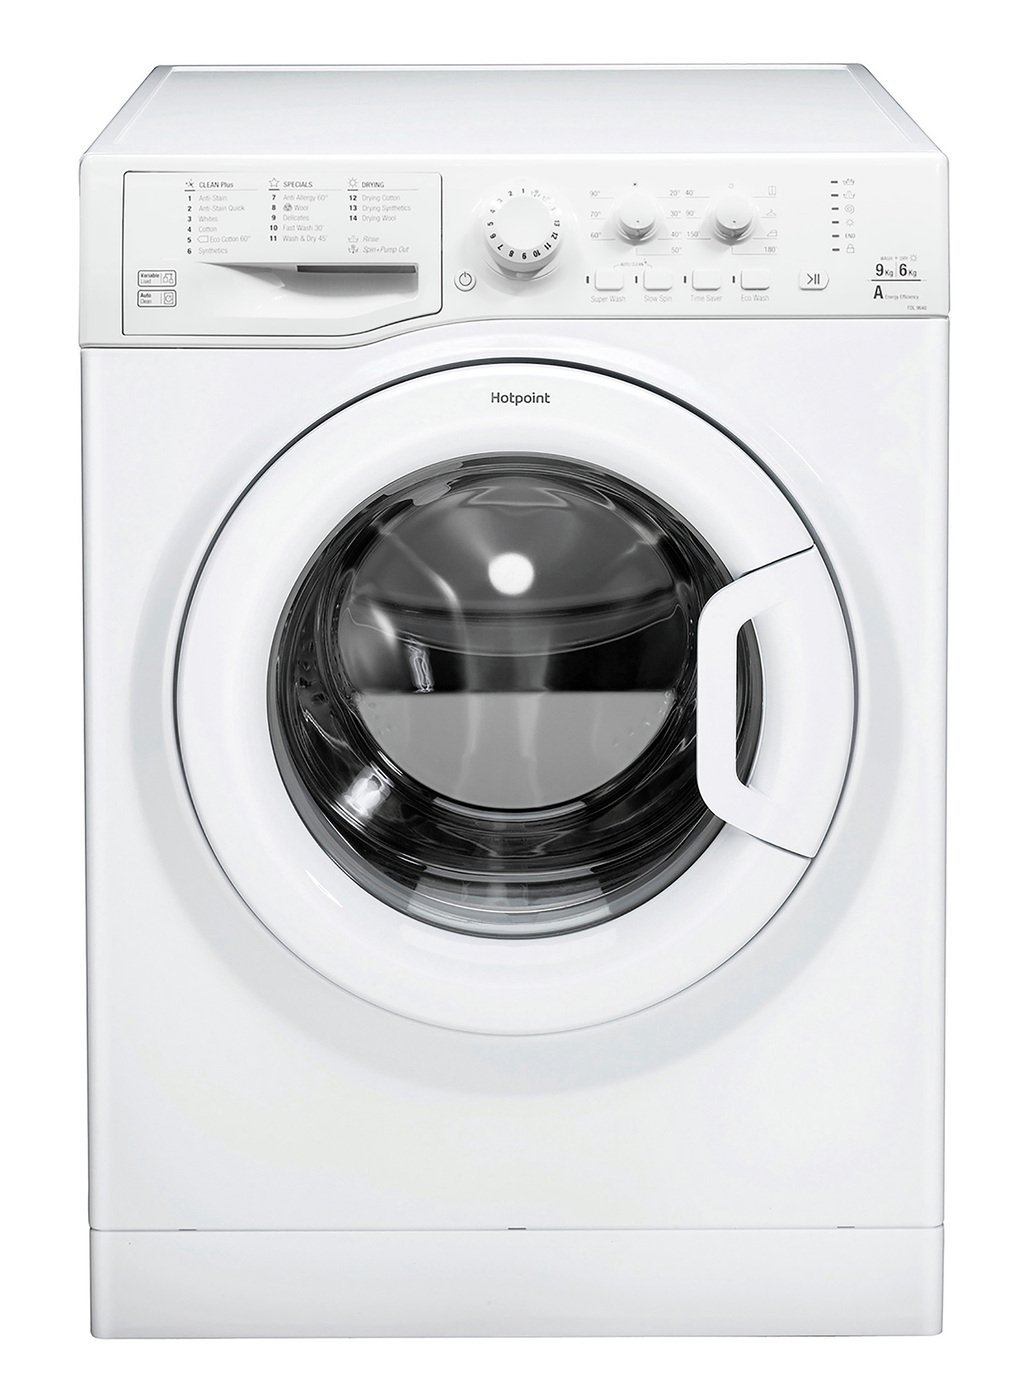 Hotpoint FDL9640PUK 9KG / 6KG 1400 Spin Washer Dryer - White